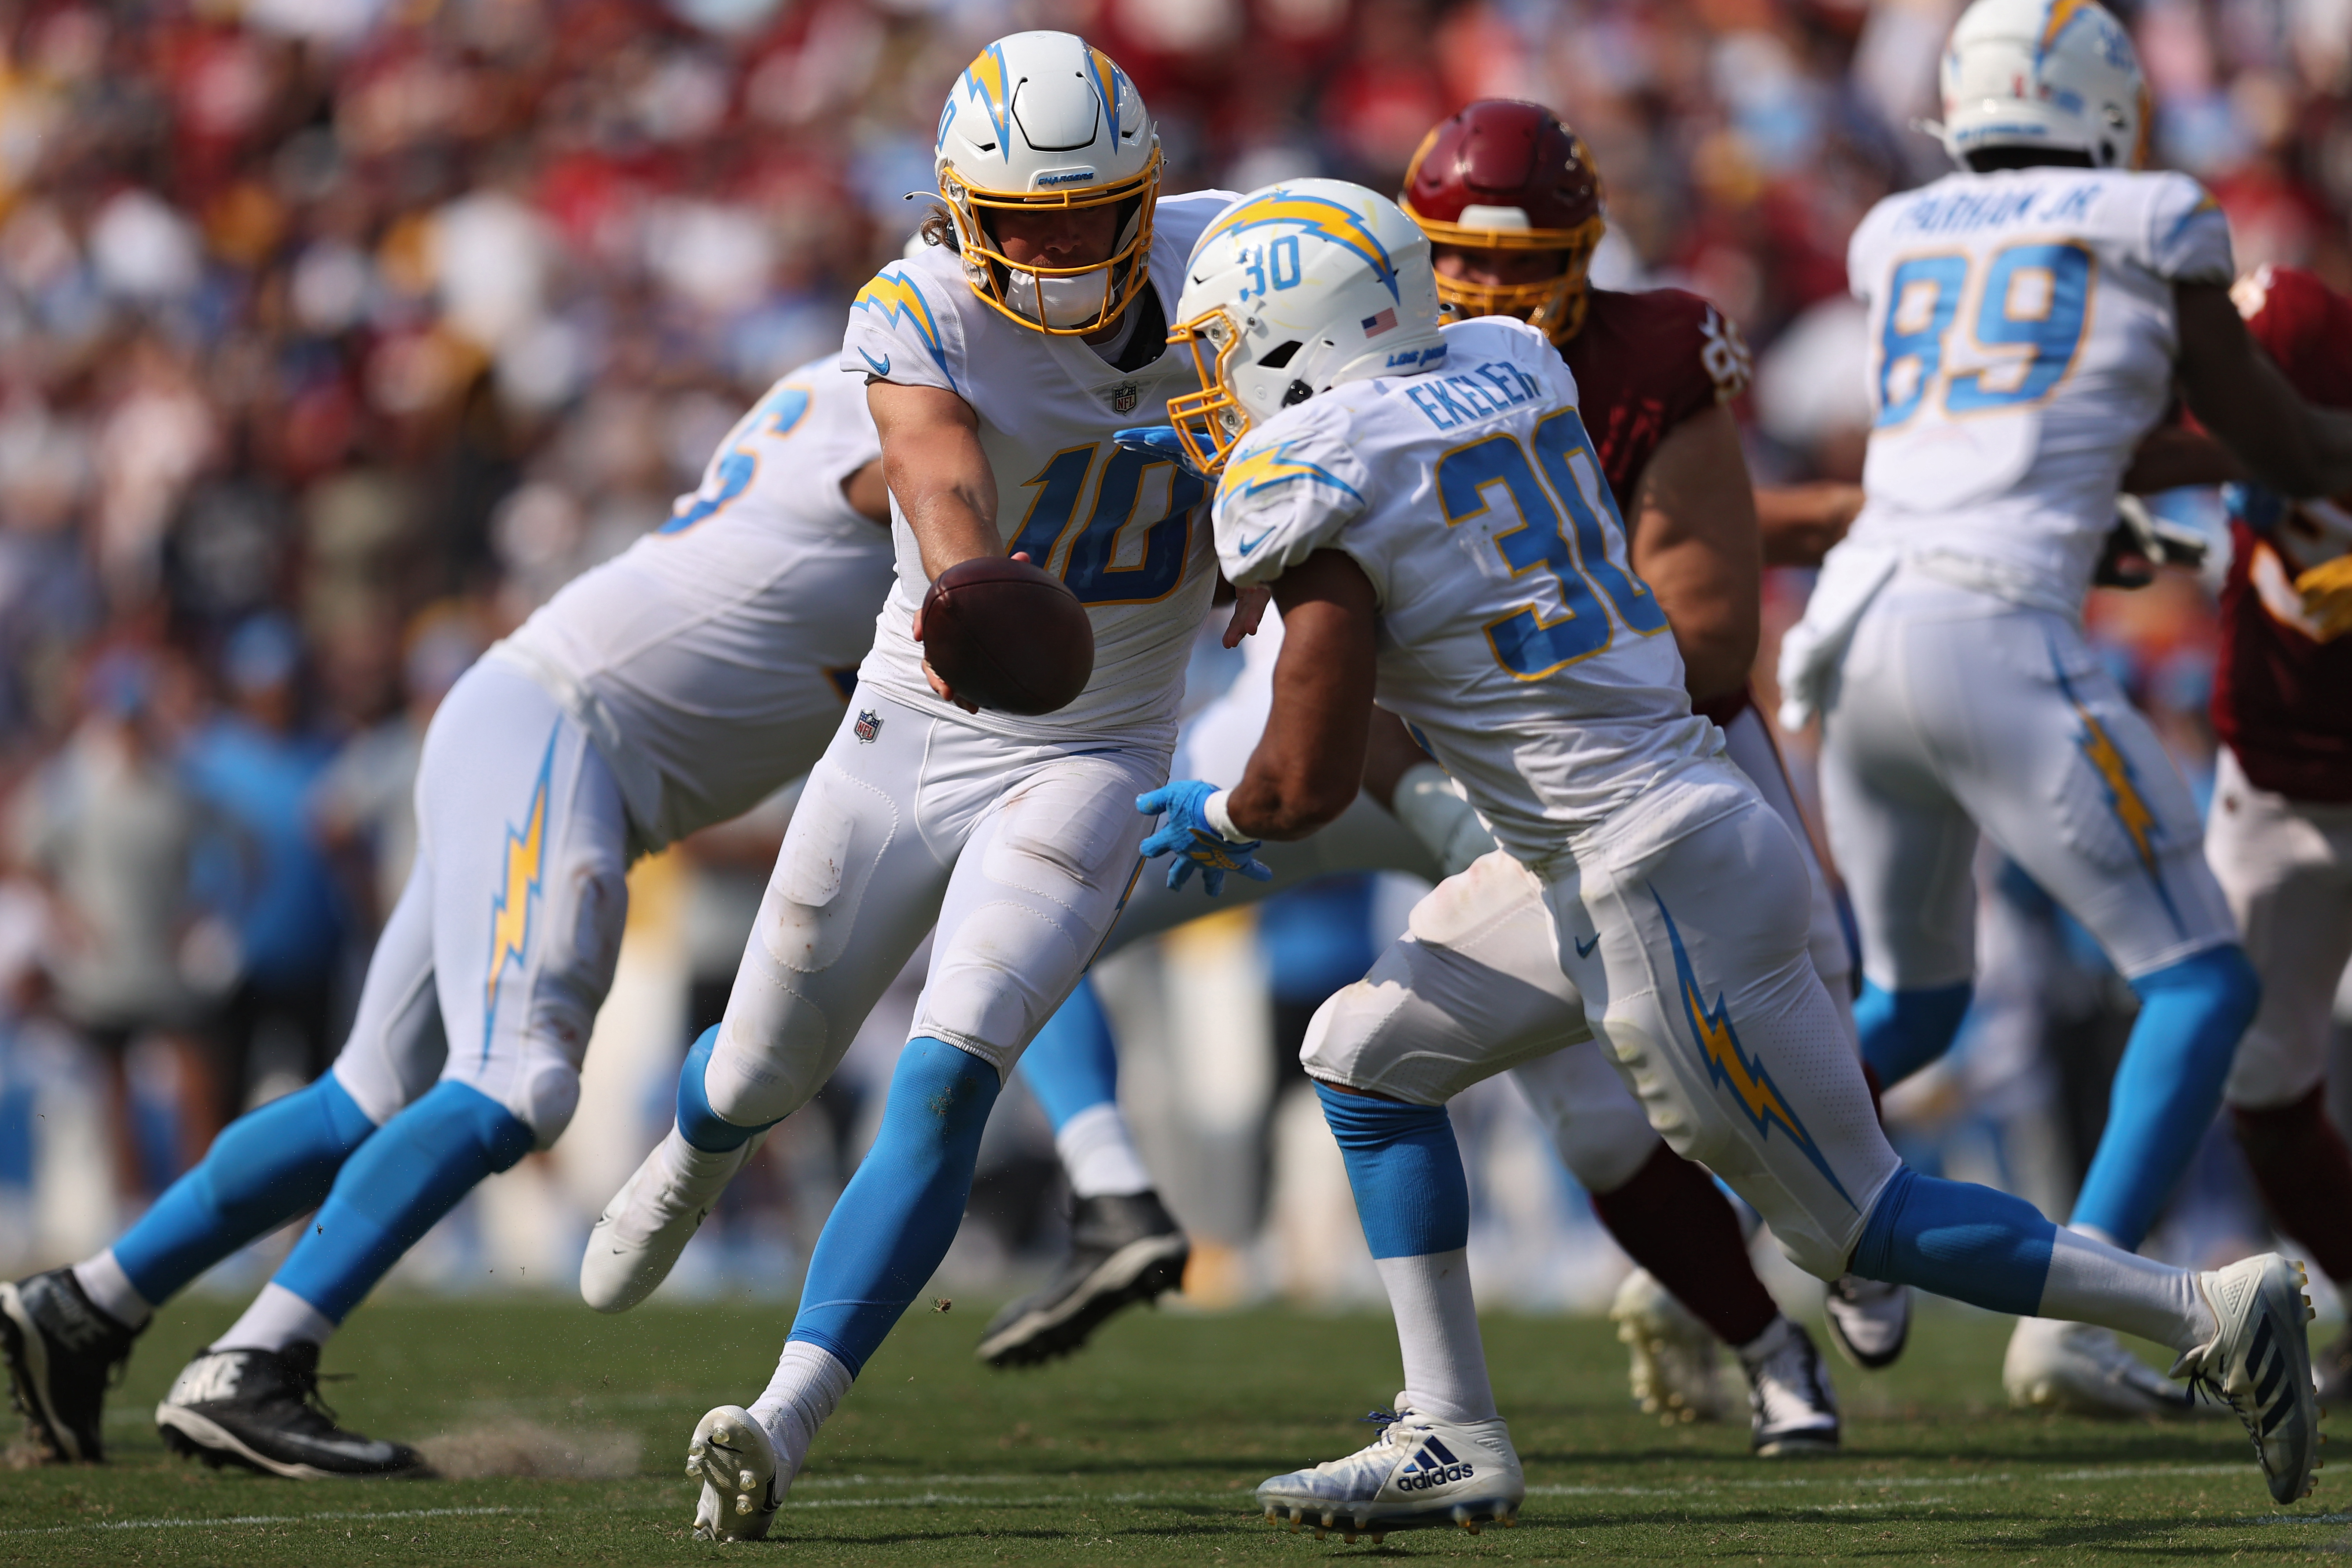 Justin Herbert of the Los Angeles Chargers hands off the ball to Austin Ekeler against the Washington Football Team at FedExField on September 12, 2021 in Landover, Maryland.